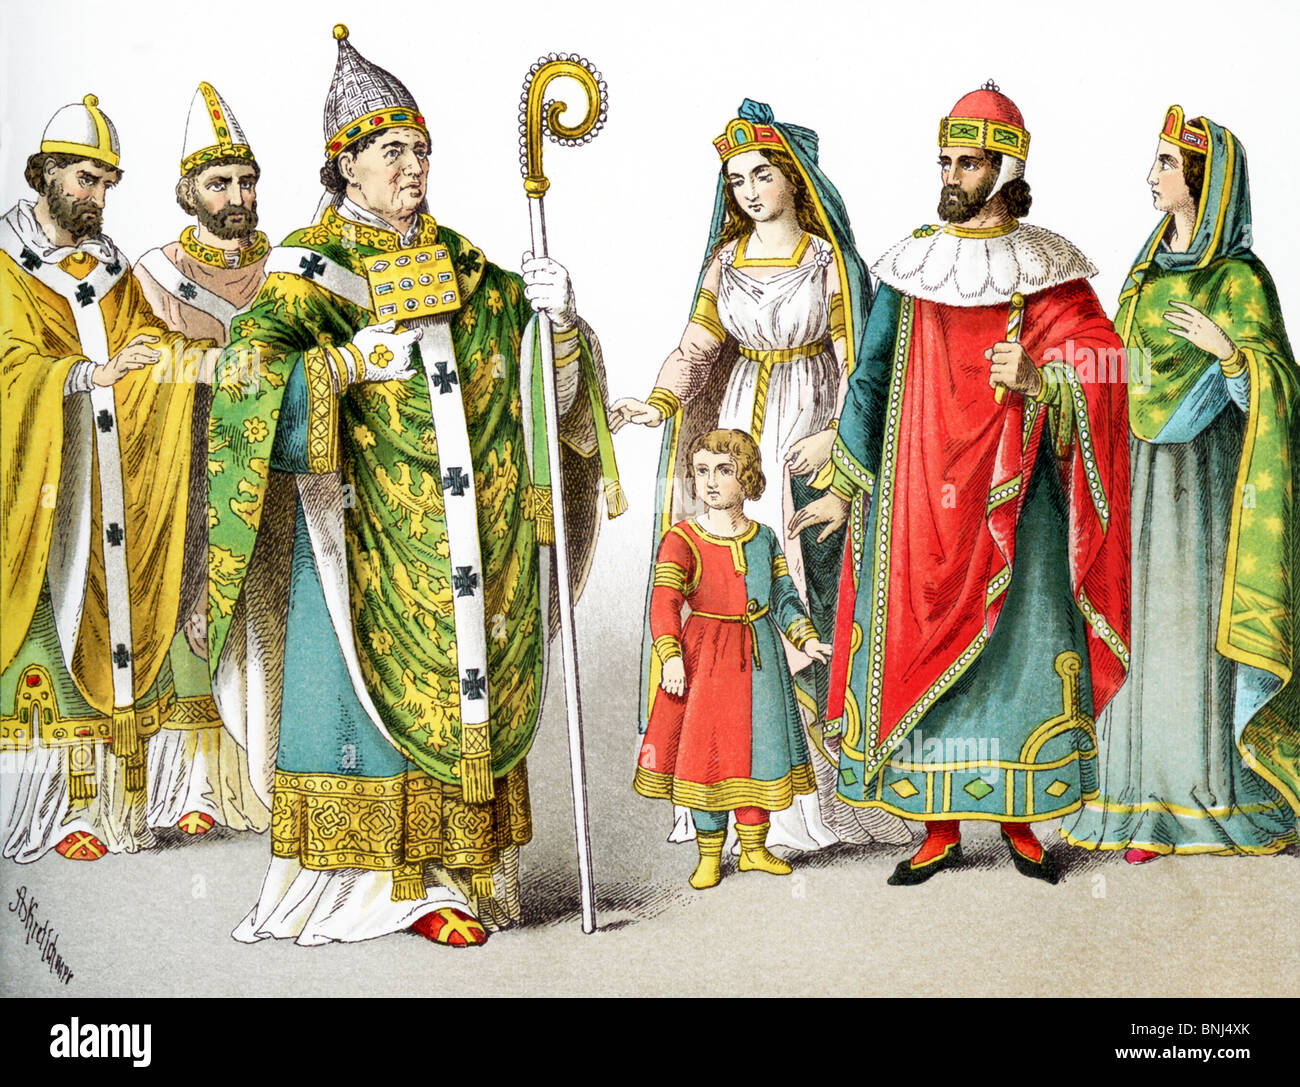 The figures represent Roman Catholic popes between 1000 and 1200  and Venetian nobles around A.D. 1200. - Stock Image